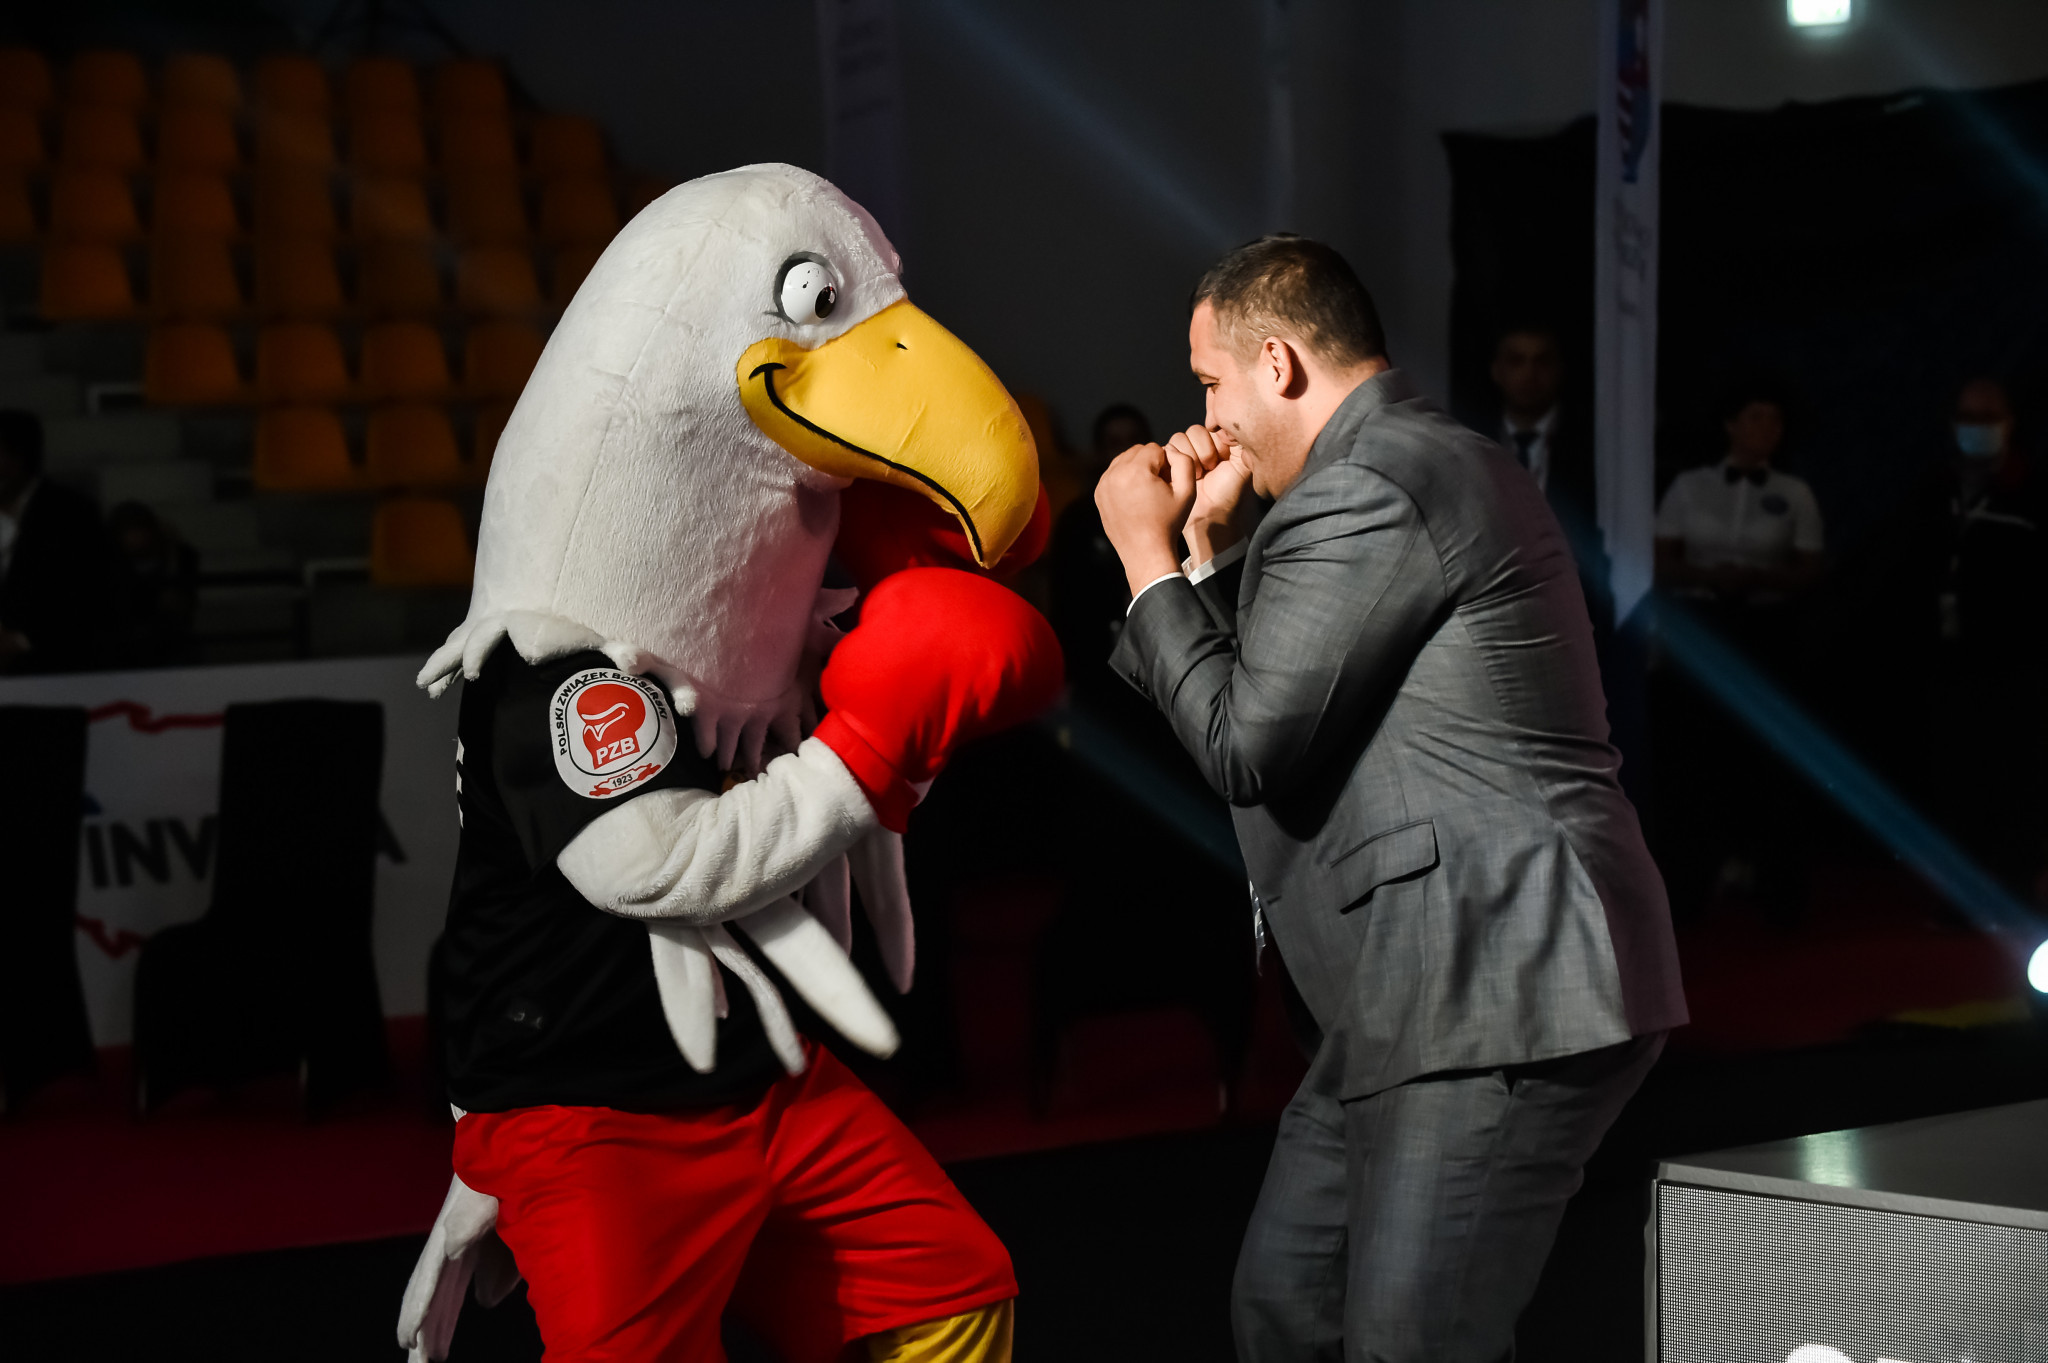 AIBA President Umar Kremlev engages in a spot of sparring with the tournament's mascot ©AIBA